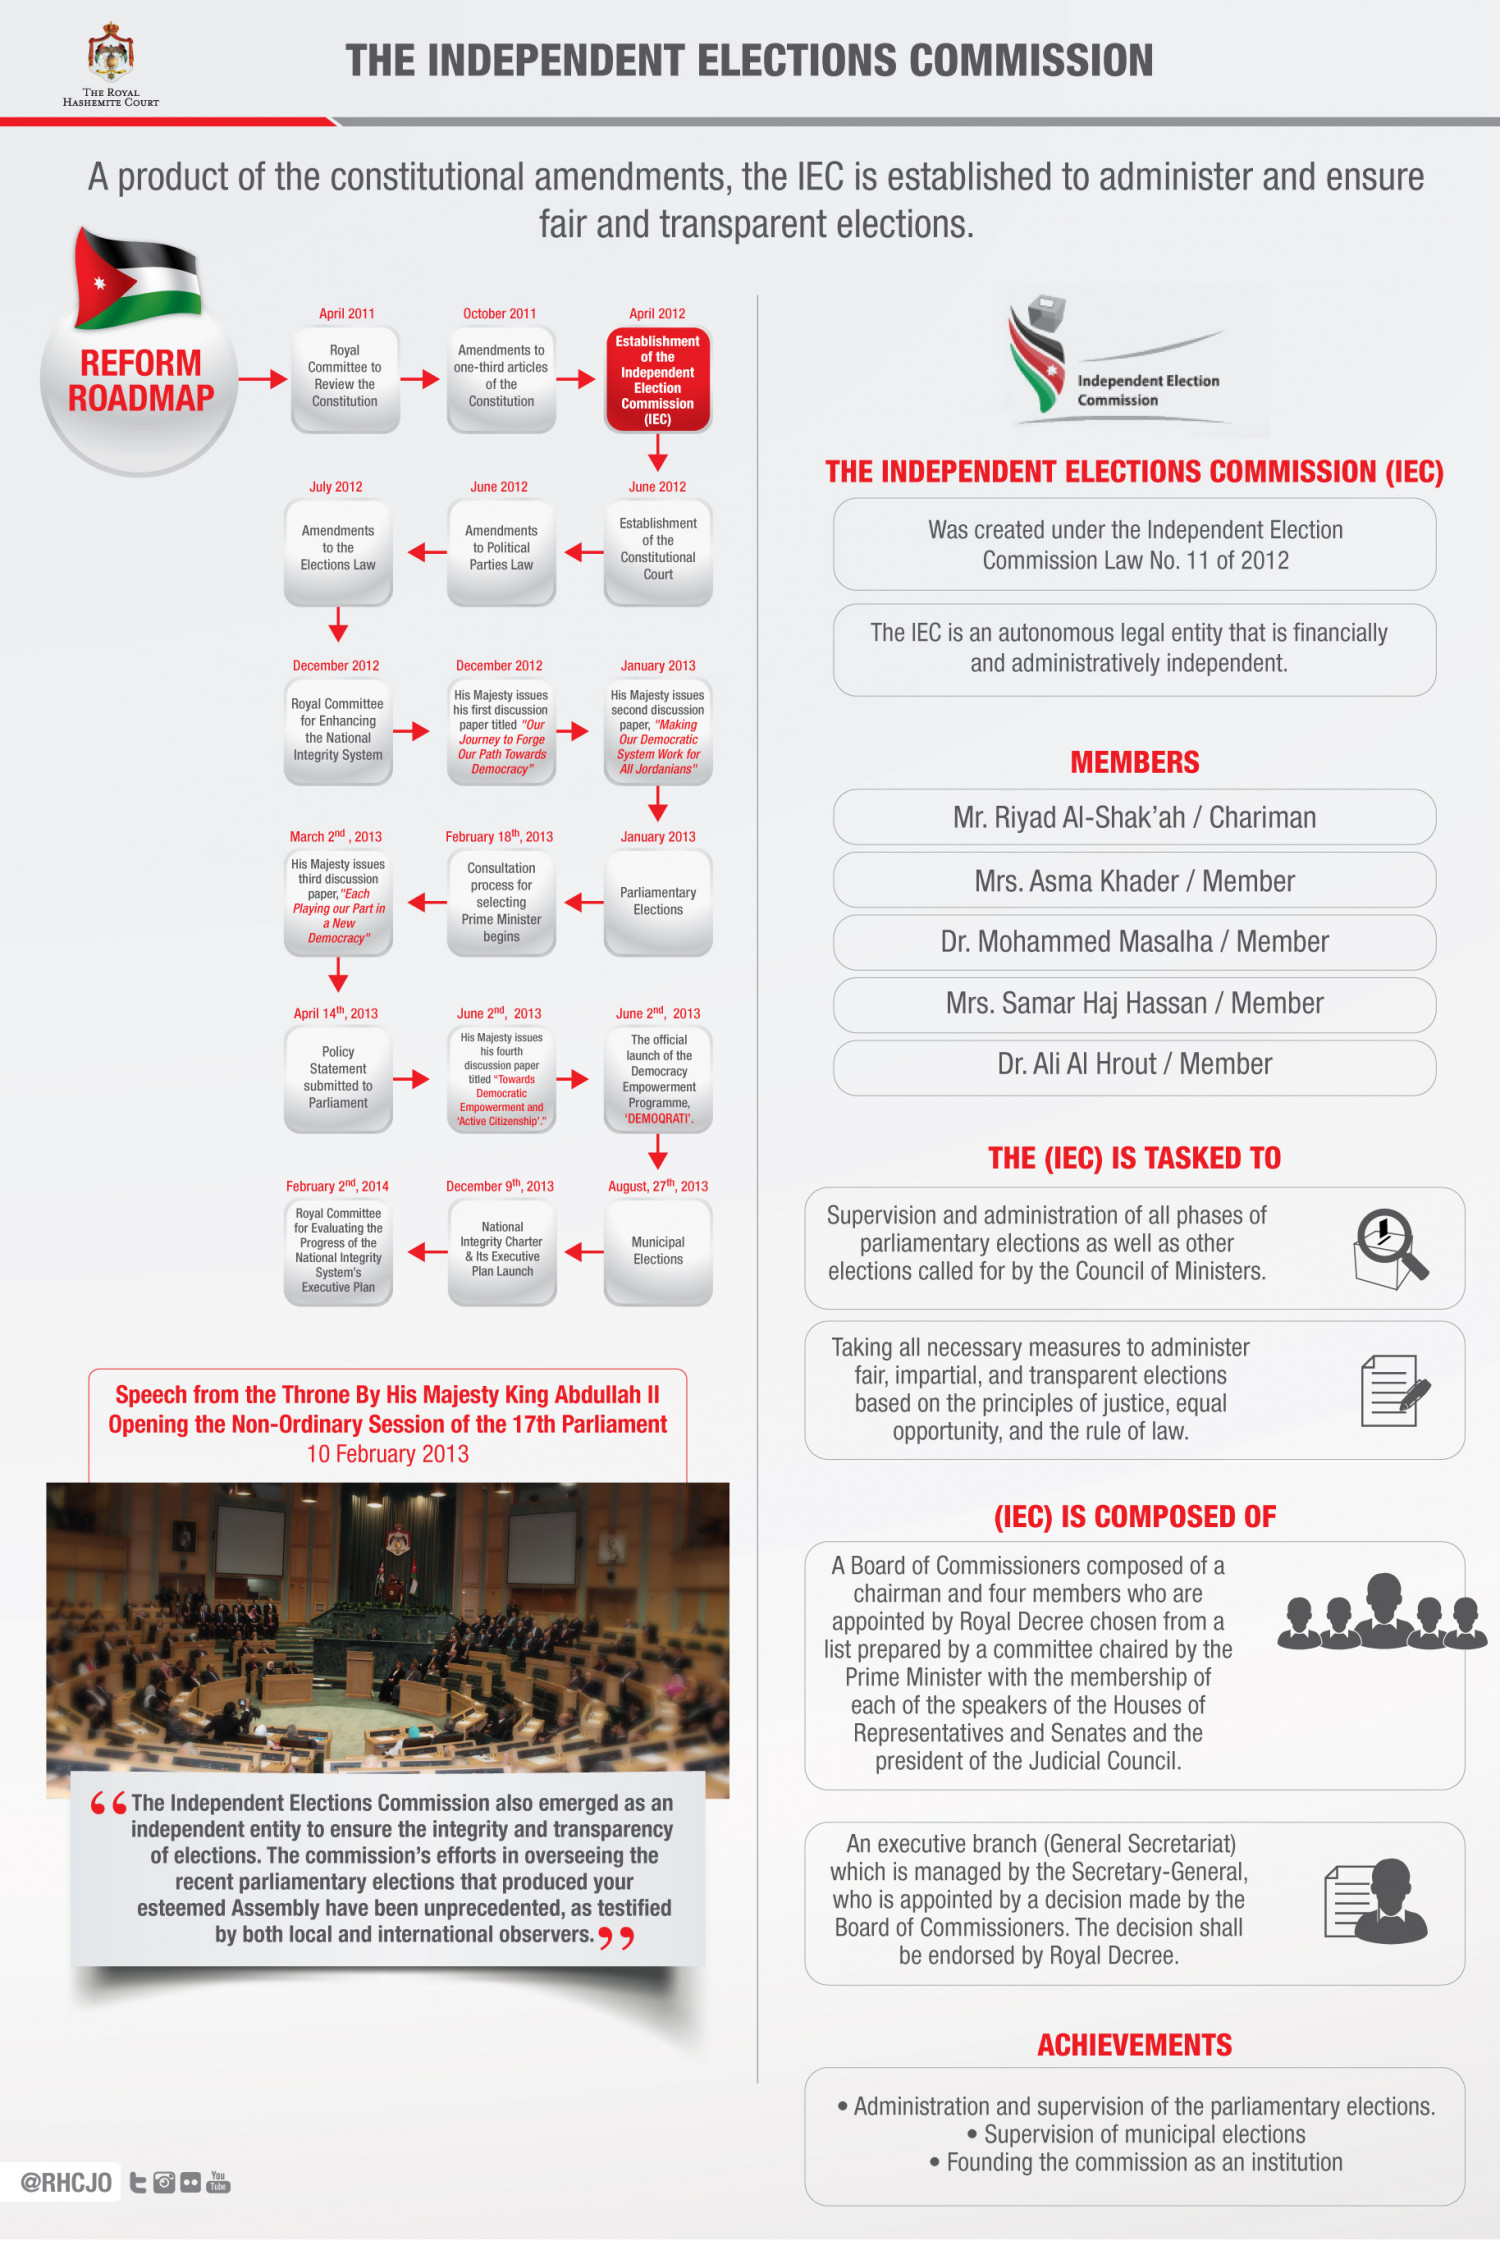 The Independent Elections Commission Infographic